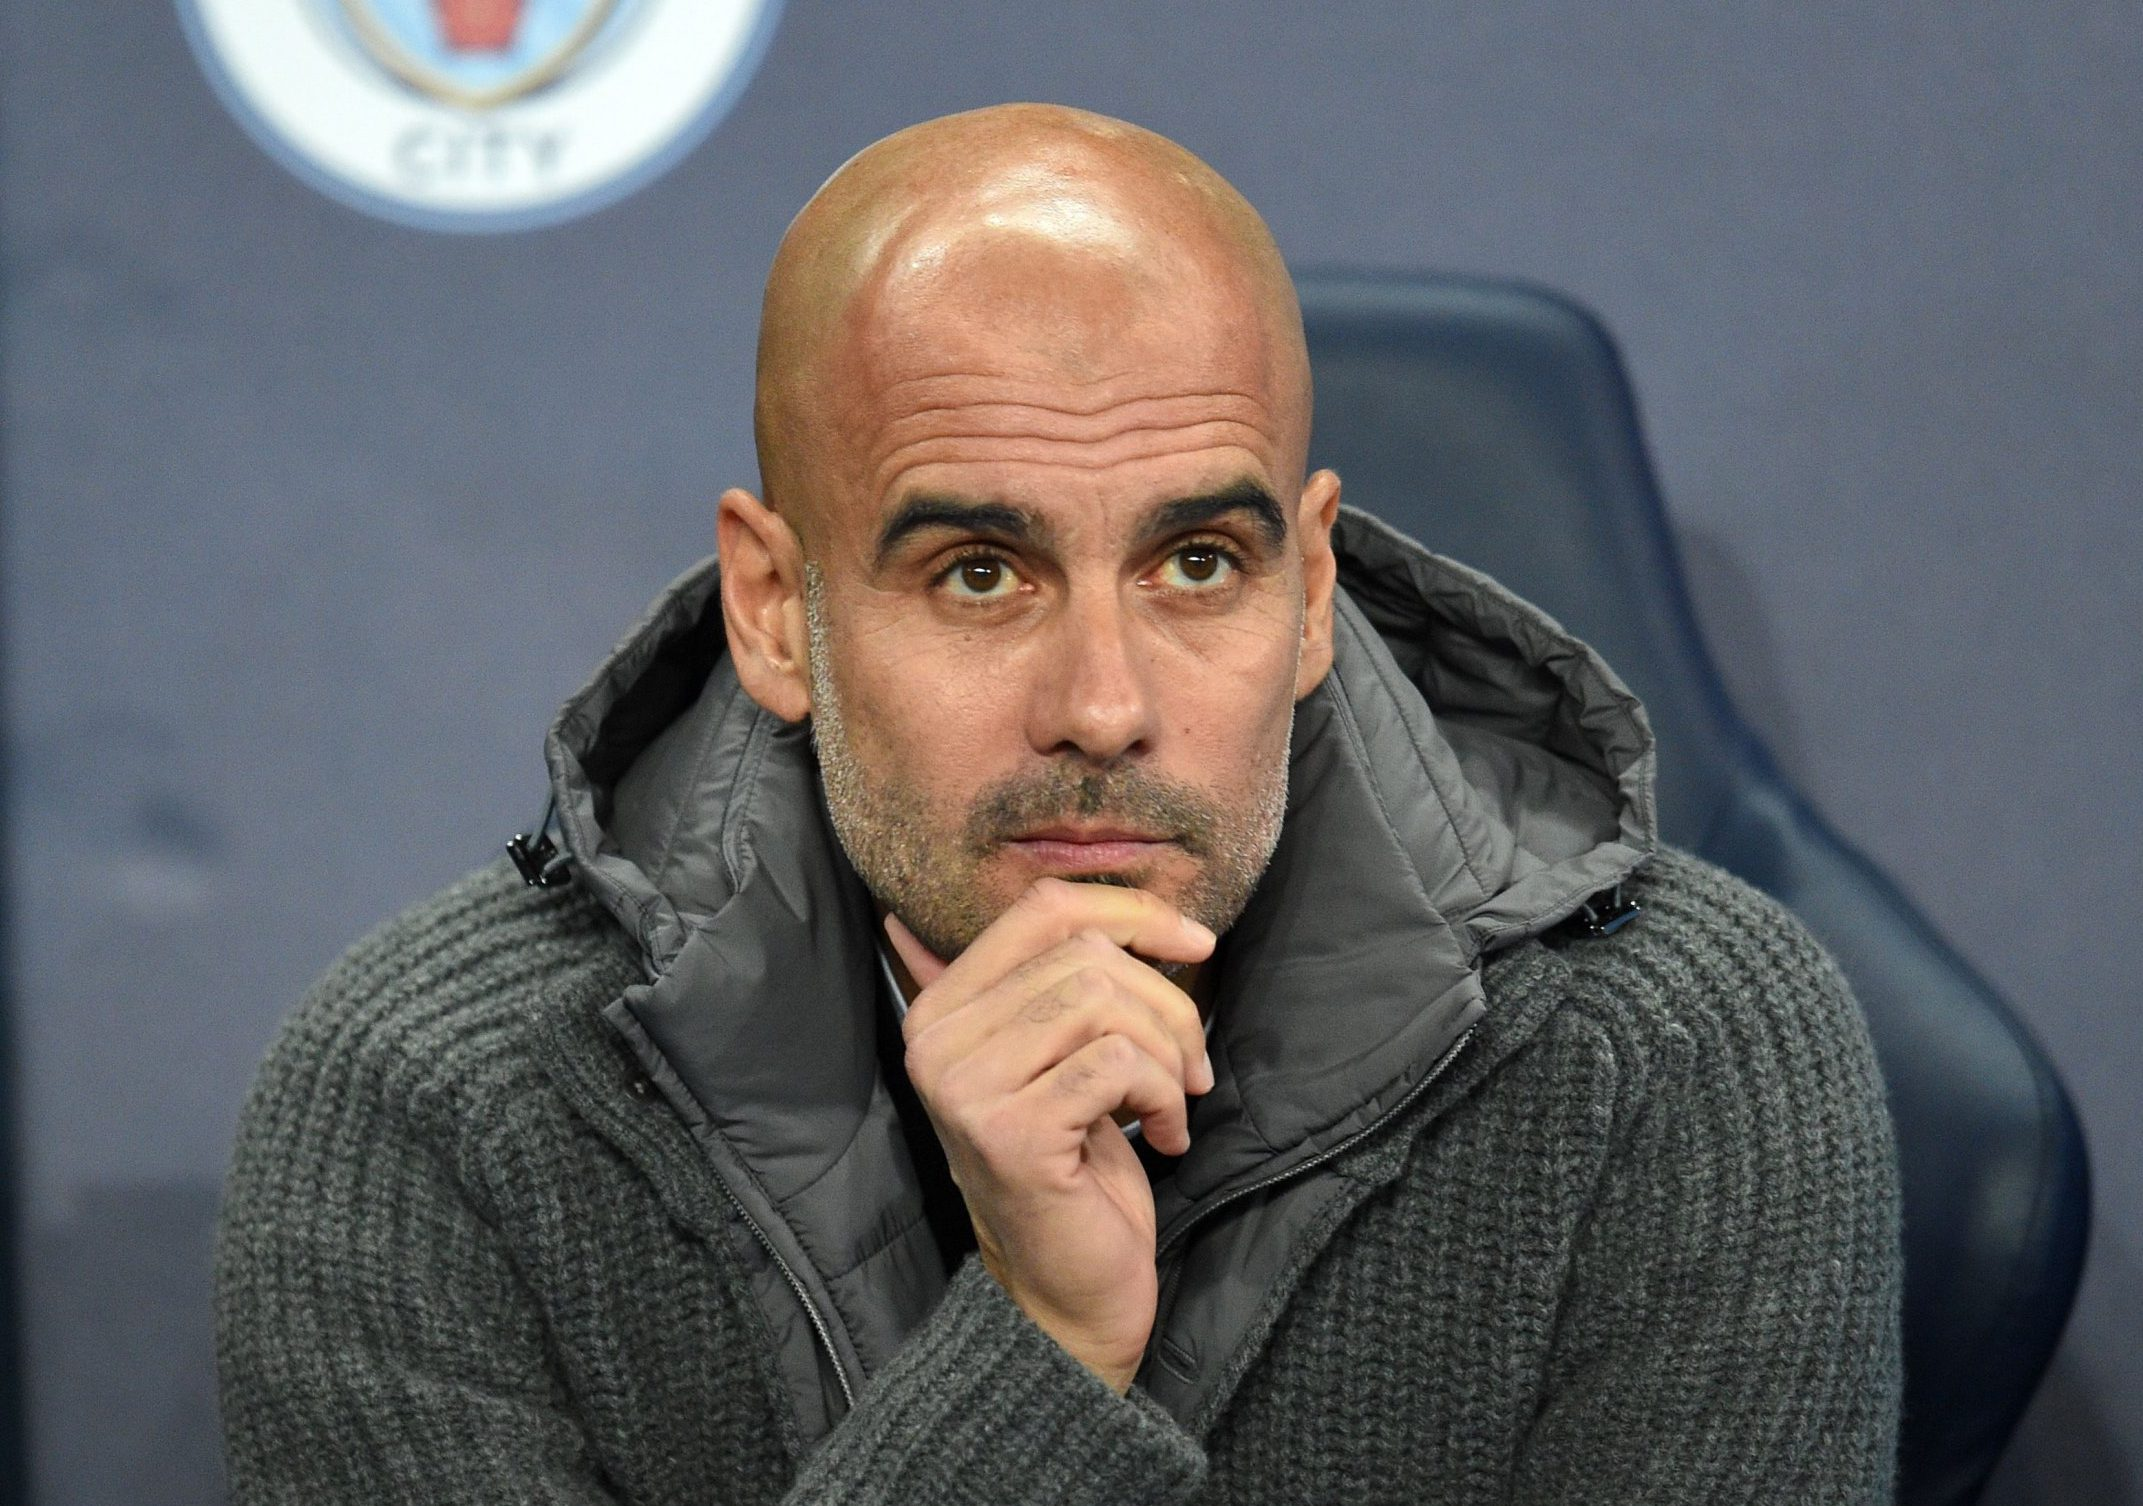 Pep Guardiola digs out James Milner when asked about mistake for Raheem Sterling penalty